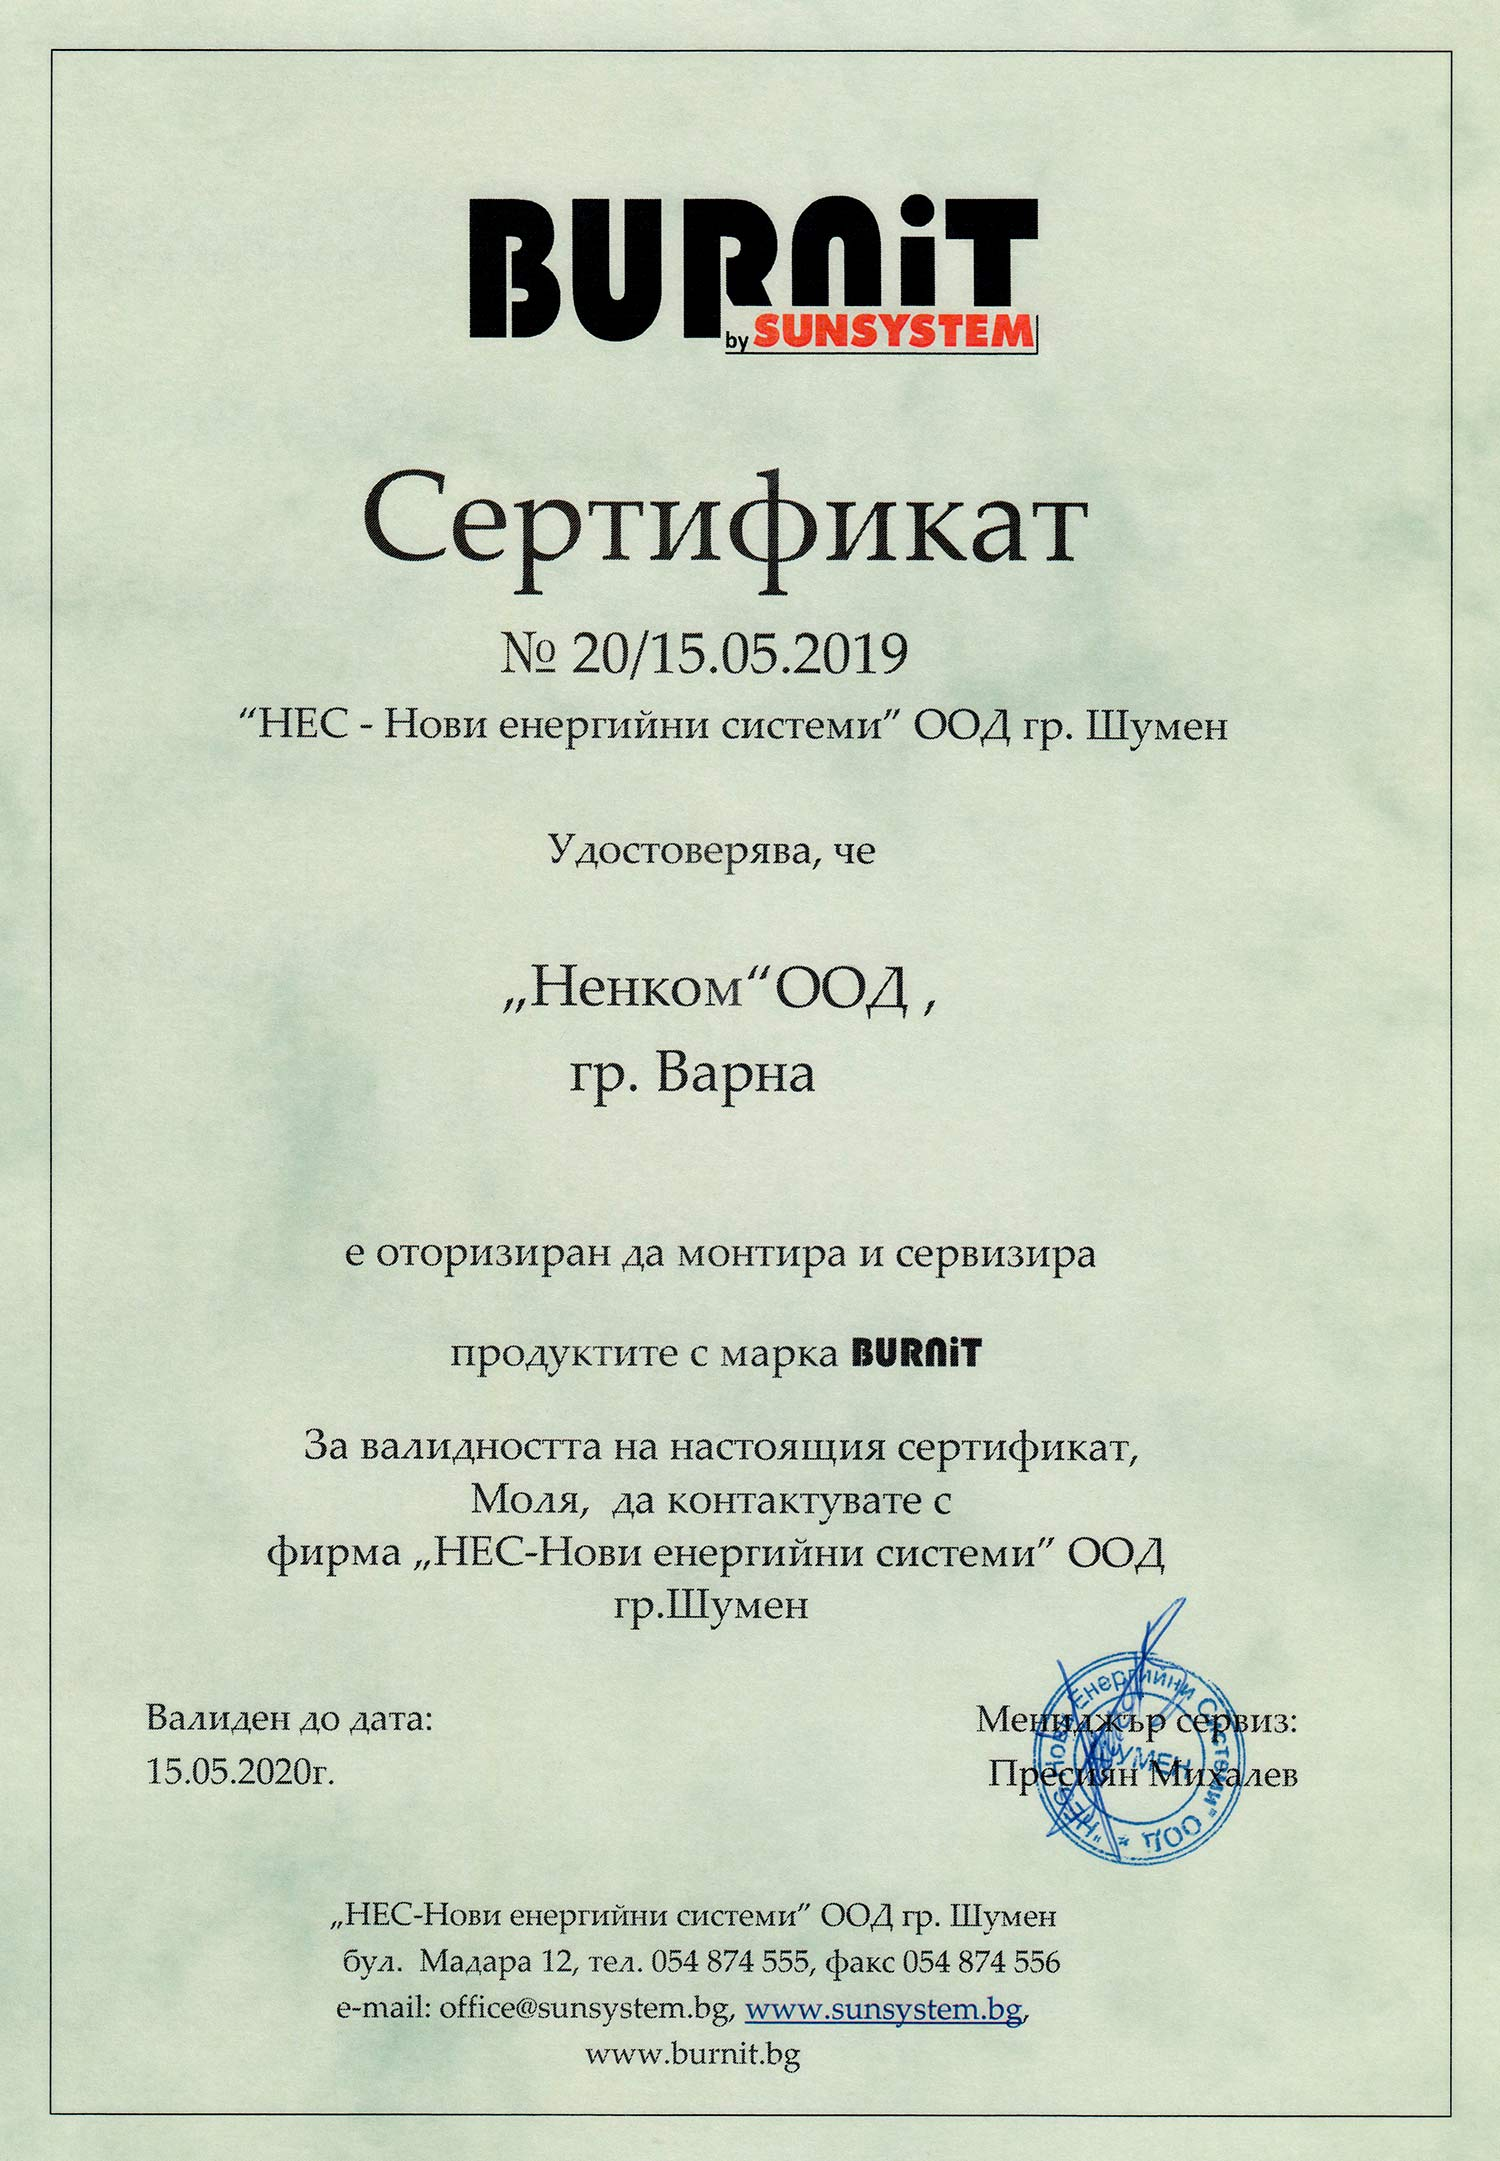 NENCOM certificate for mounting BURNiT by SUNSYSTEM products